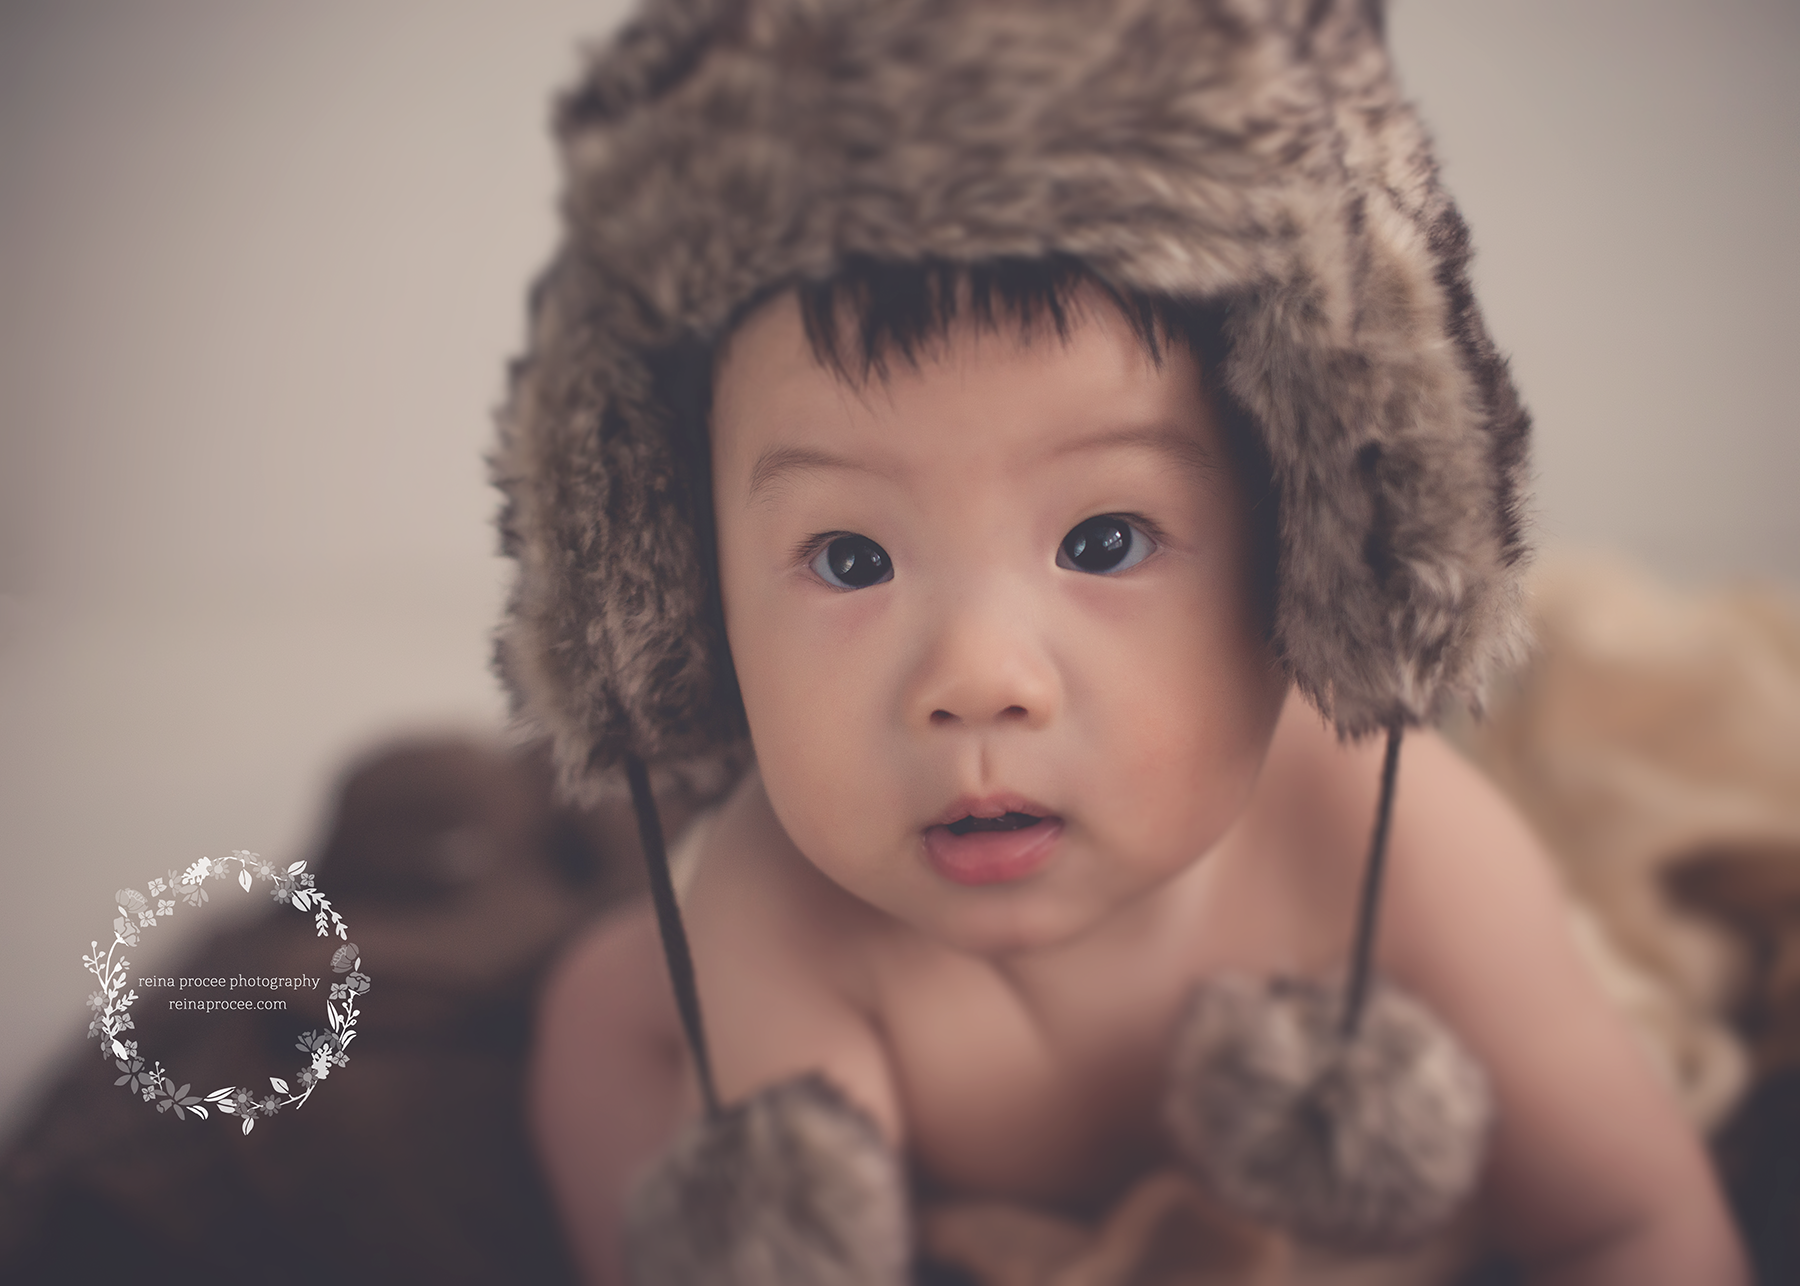 milestones-6-months-baby-infant-montreal-photographer-photography-3